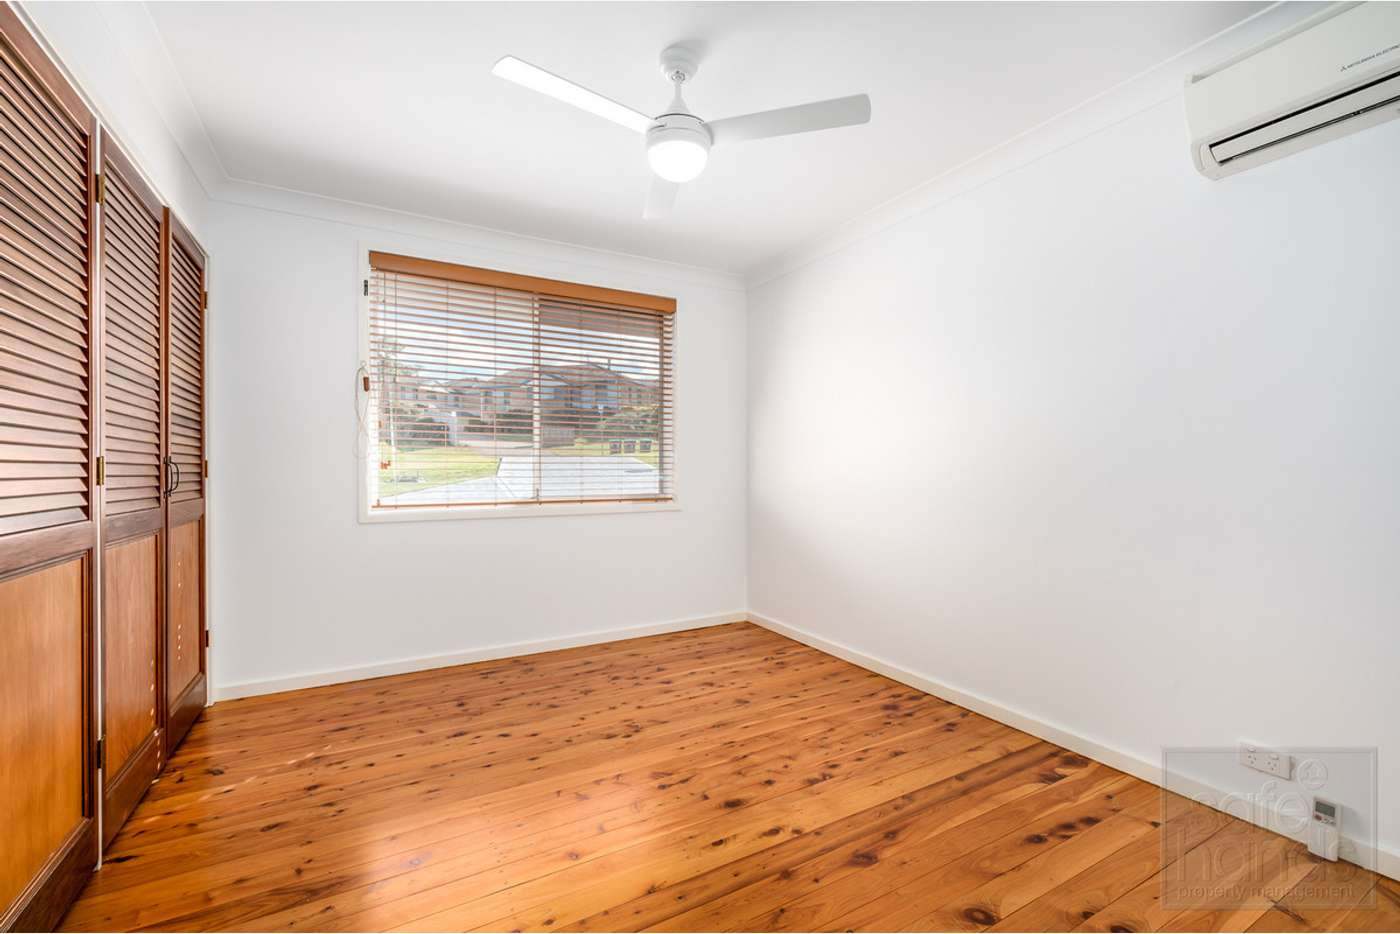 Sixth view of Homely house listing, 10 Boldon Close, Charlestown NSW 2290